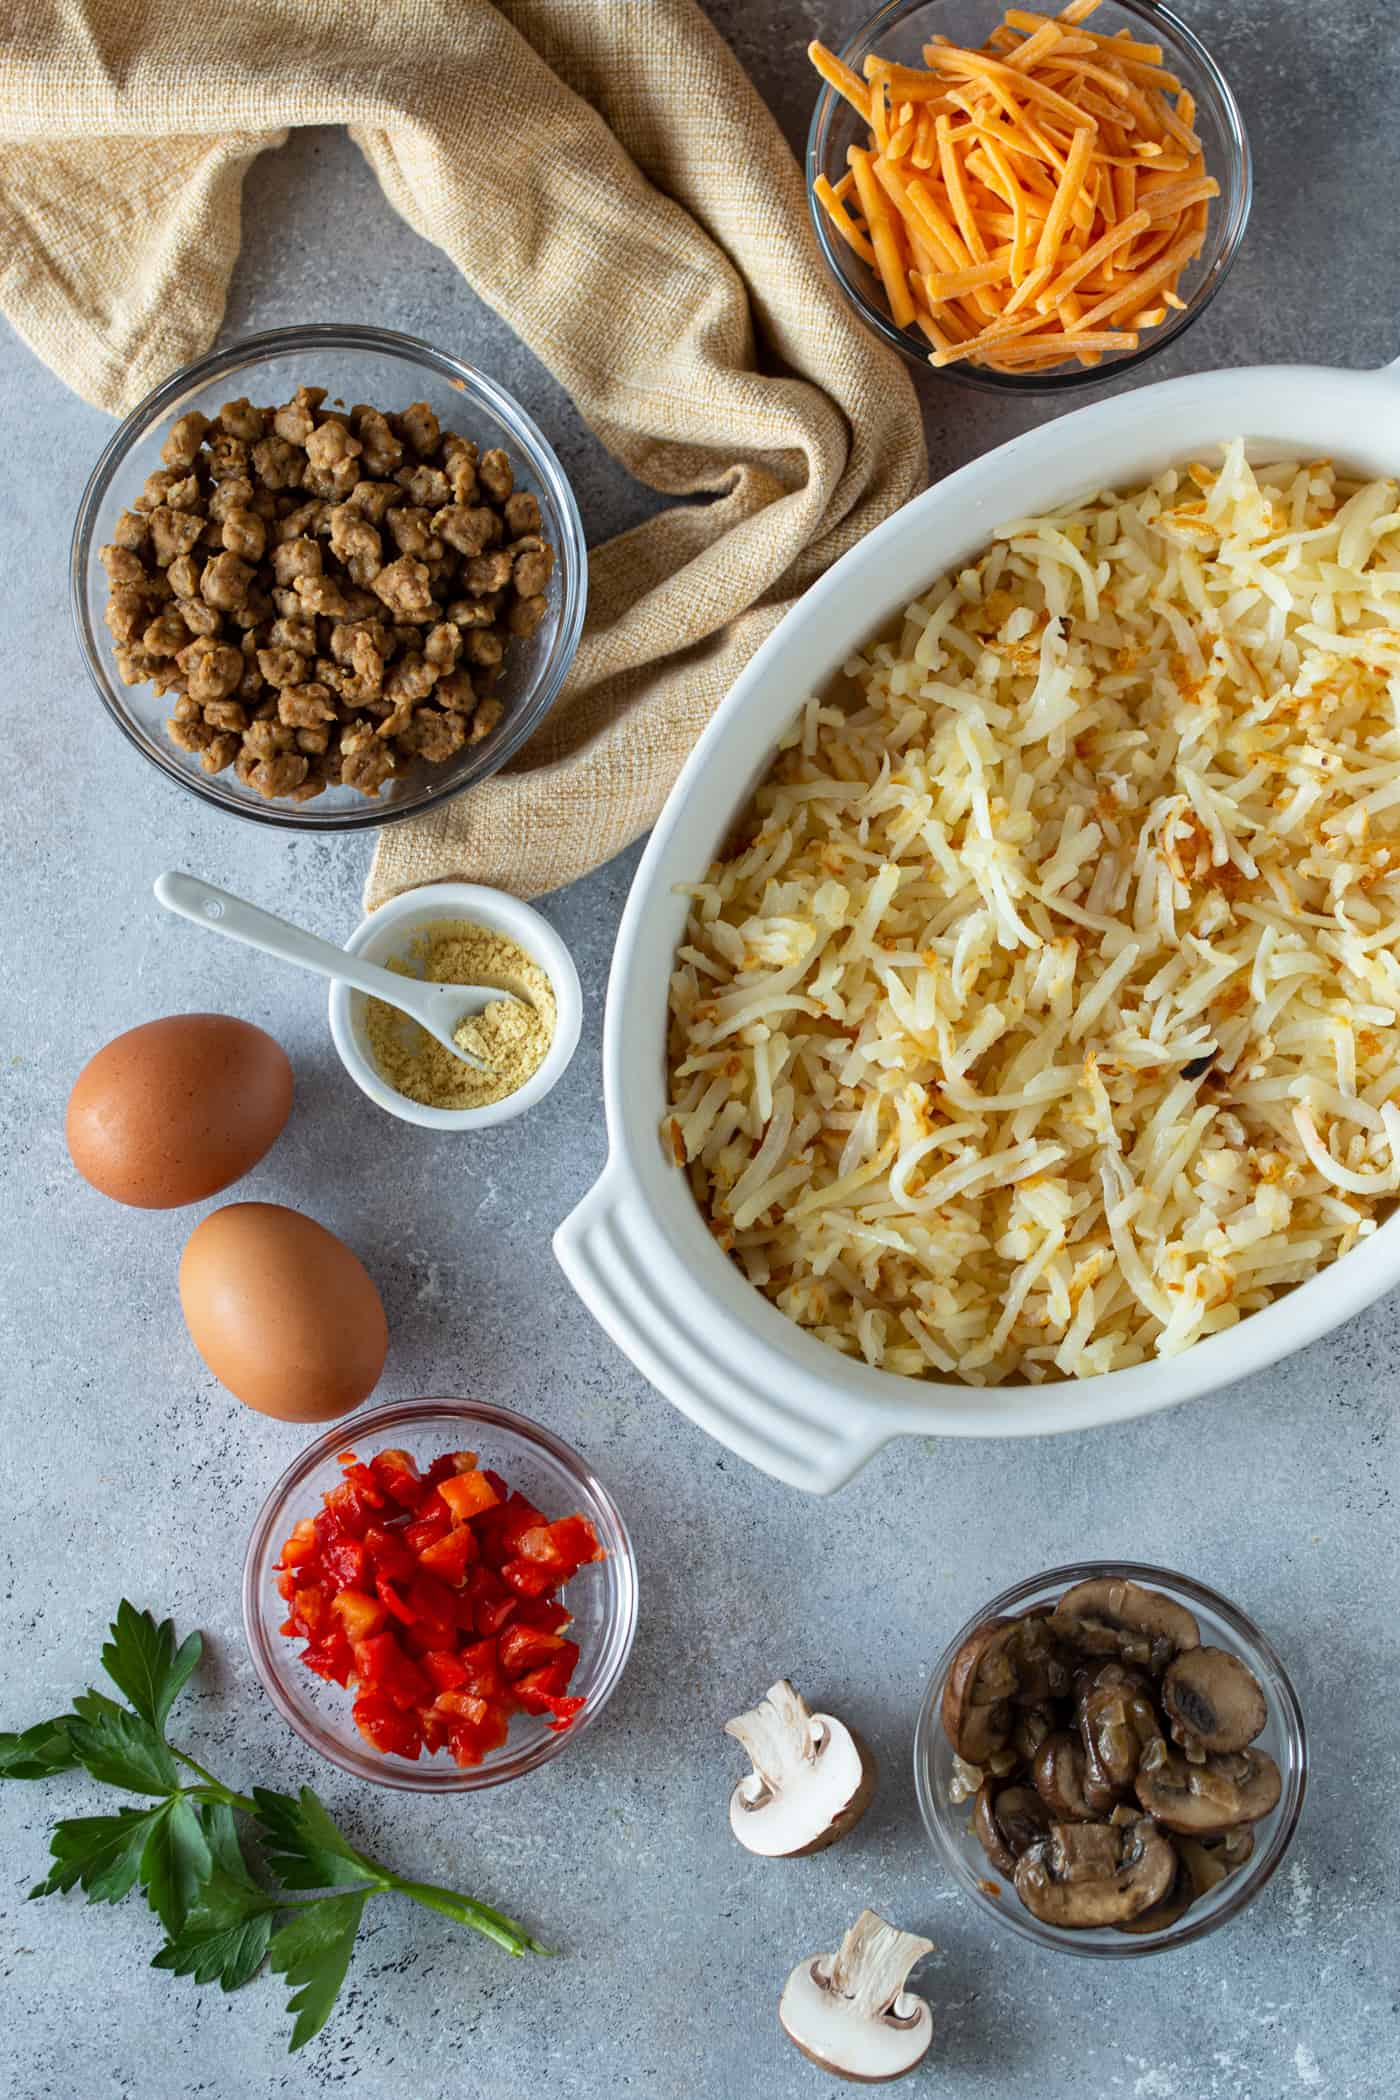 Ingredients needed for sausage hash brown and egg casserole in bowls on a white surface.